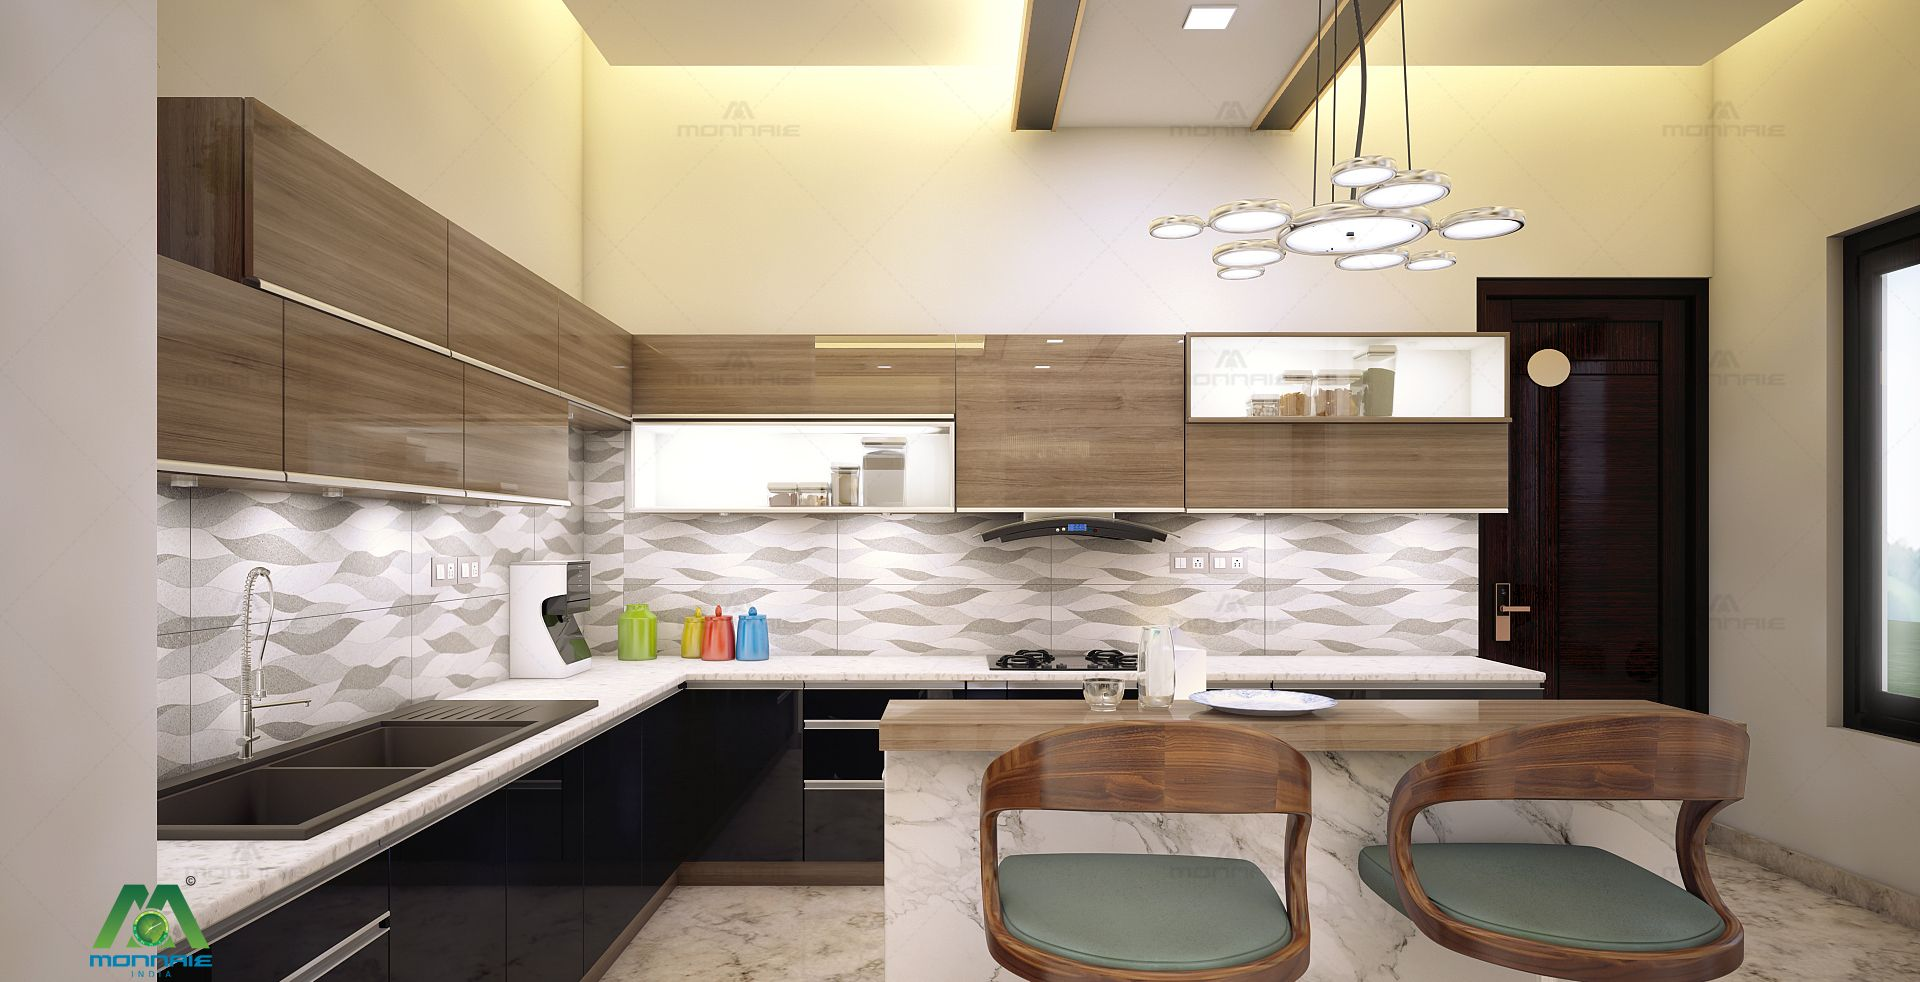 Modular Kitchen Designs Ideas That Can Make The Home Look Elegant